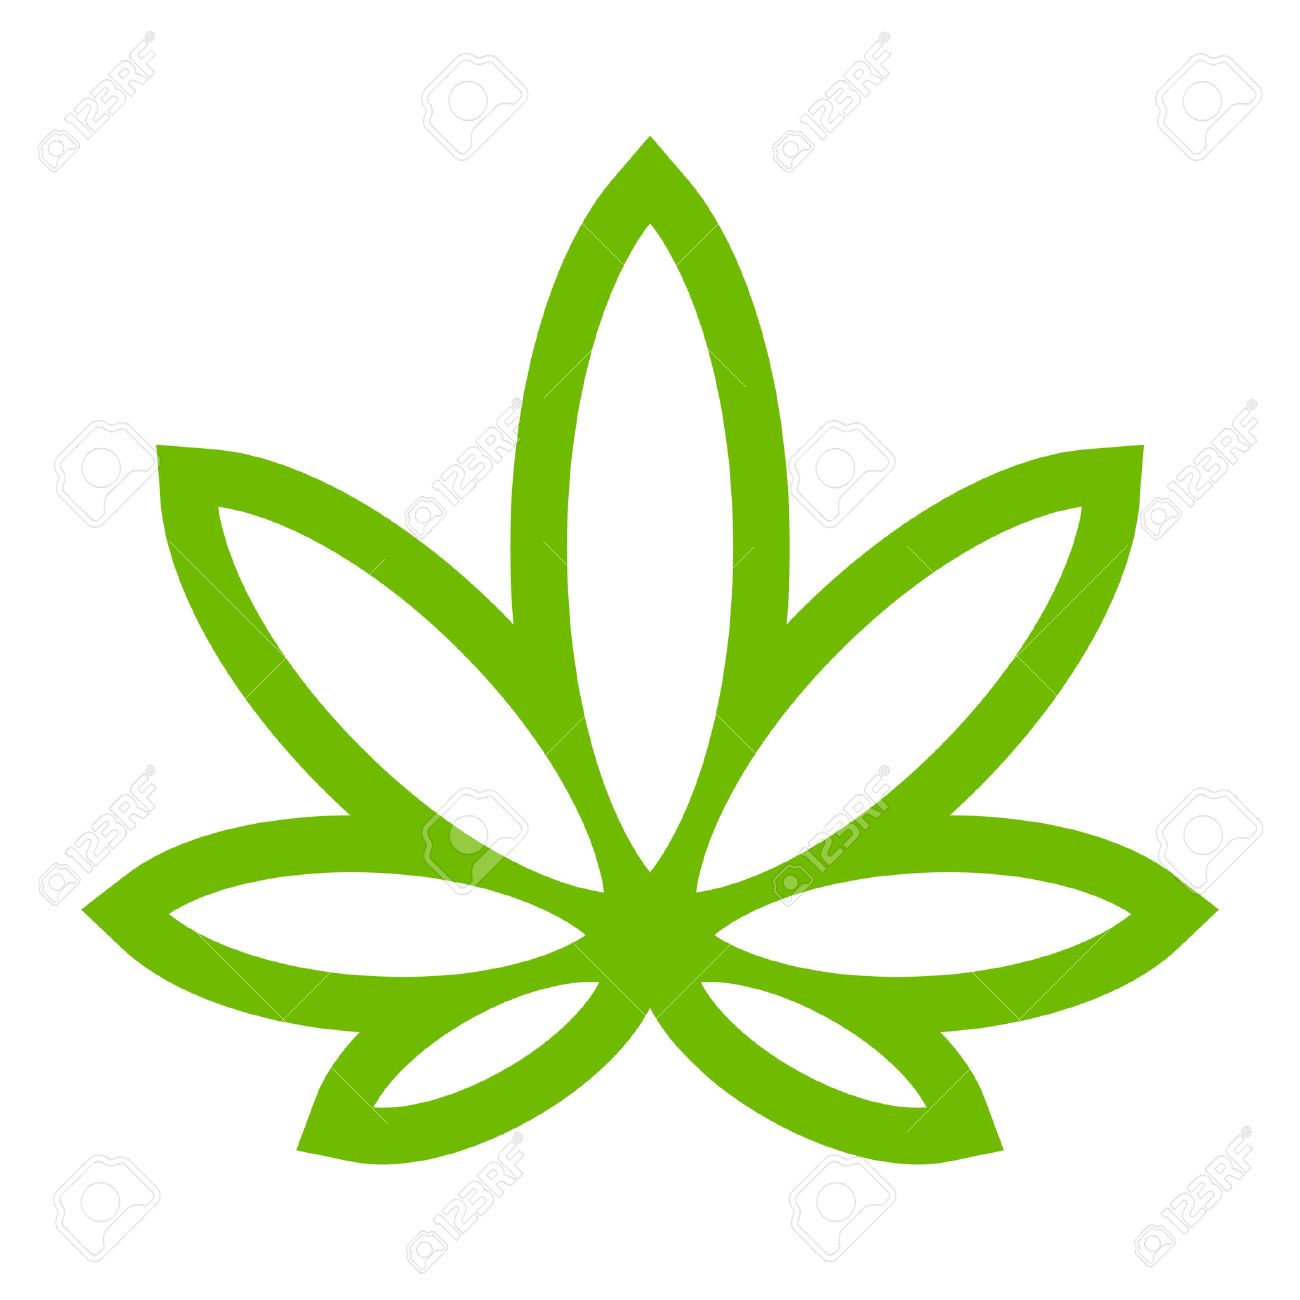 11 547 marijuana cliparts stock vector and royalty free marijuana rh 123rf com marijuana leaves clip art marijuana leaf clip art free